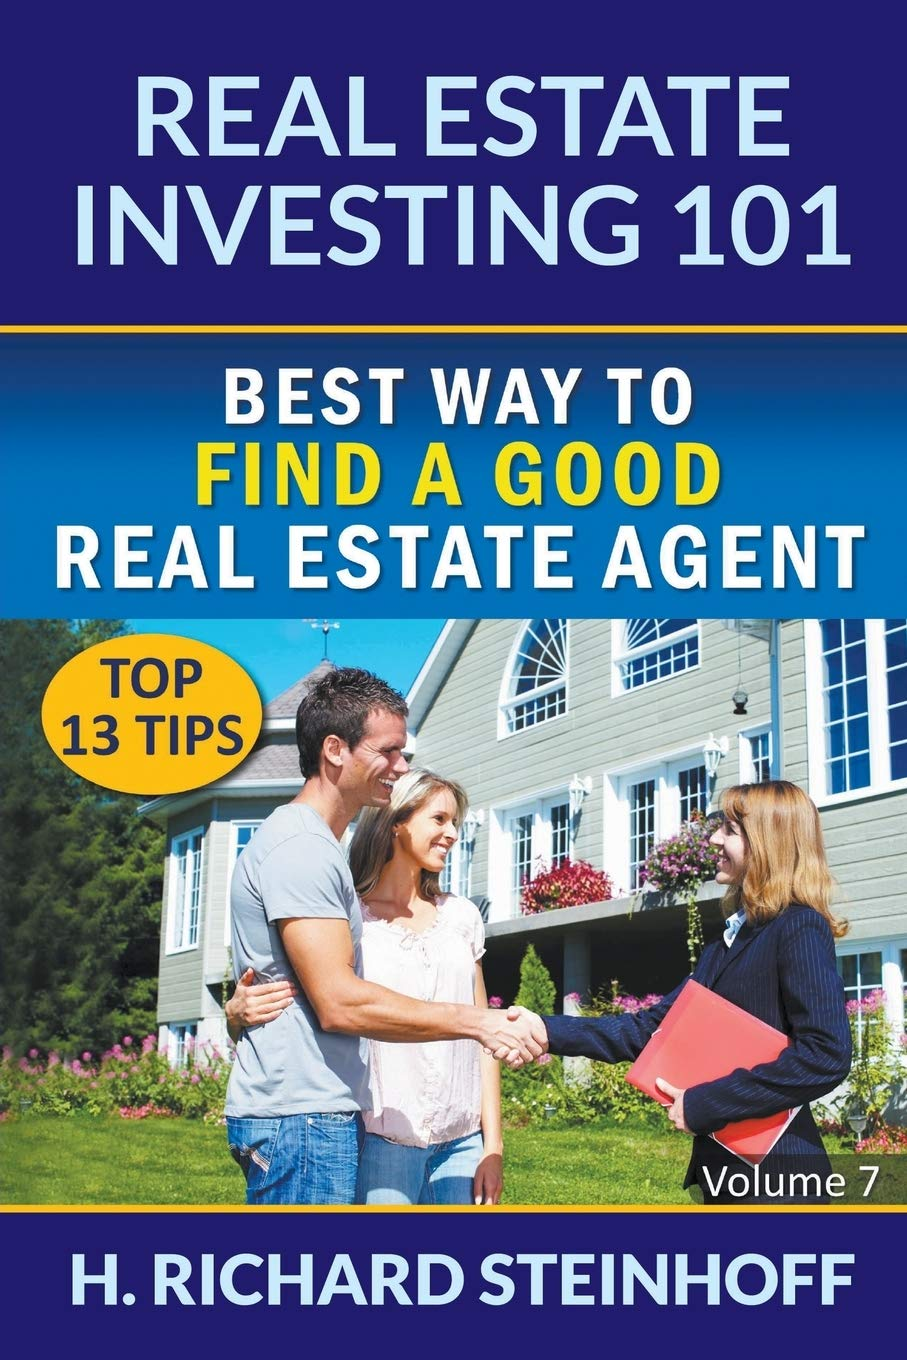 The Top Facts On Real Estate Investment